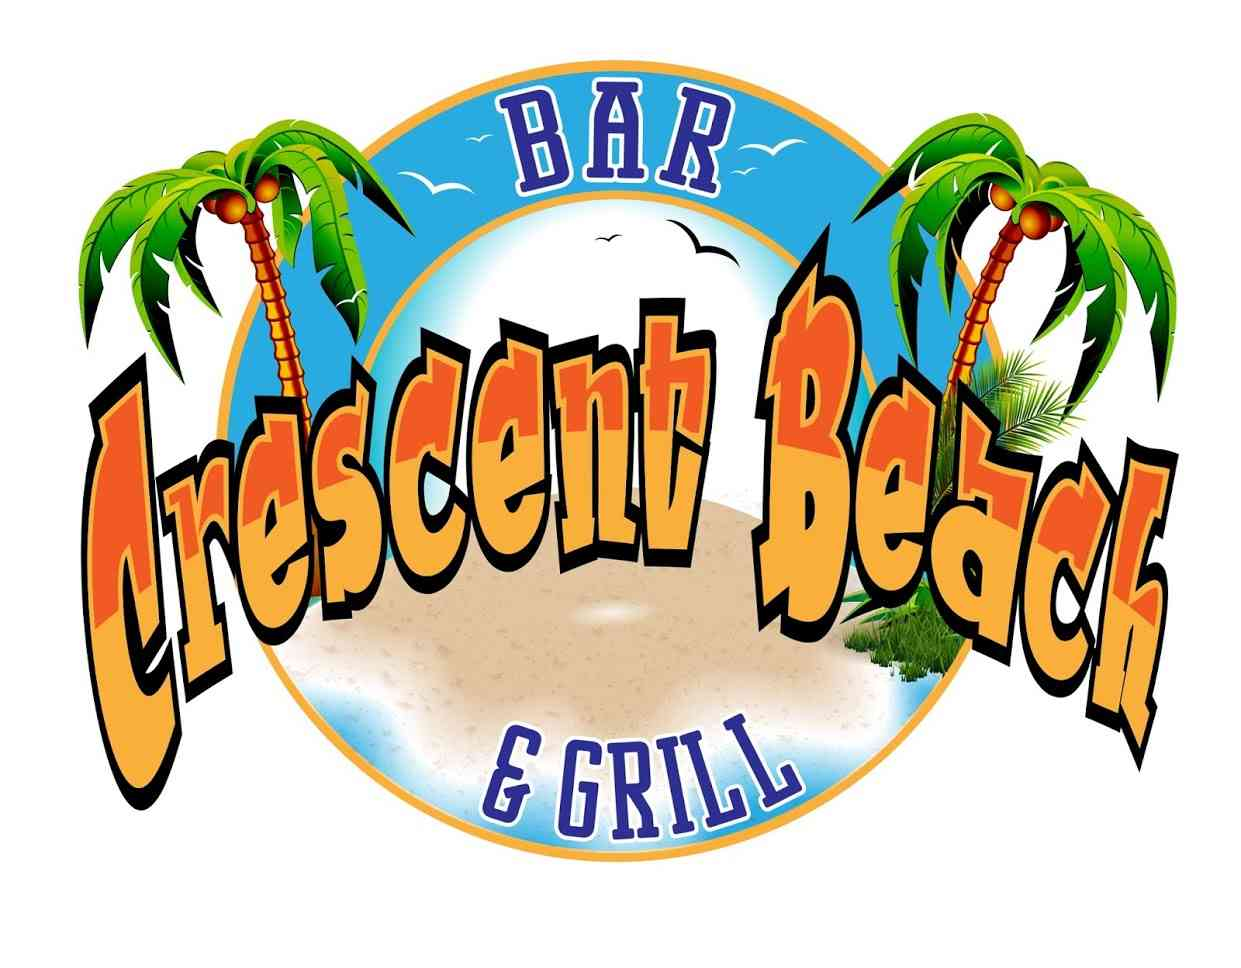 Crescent Beach Bar & Grill